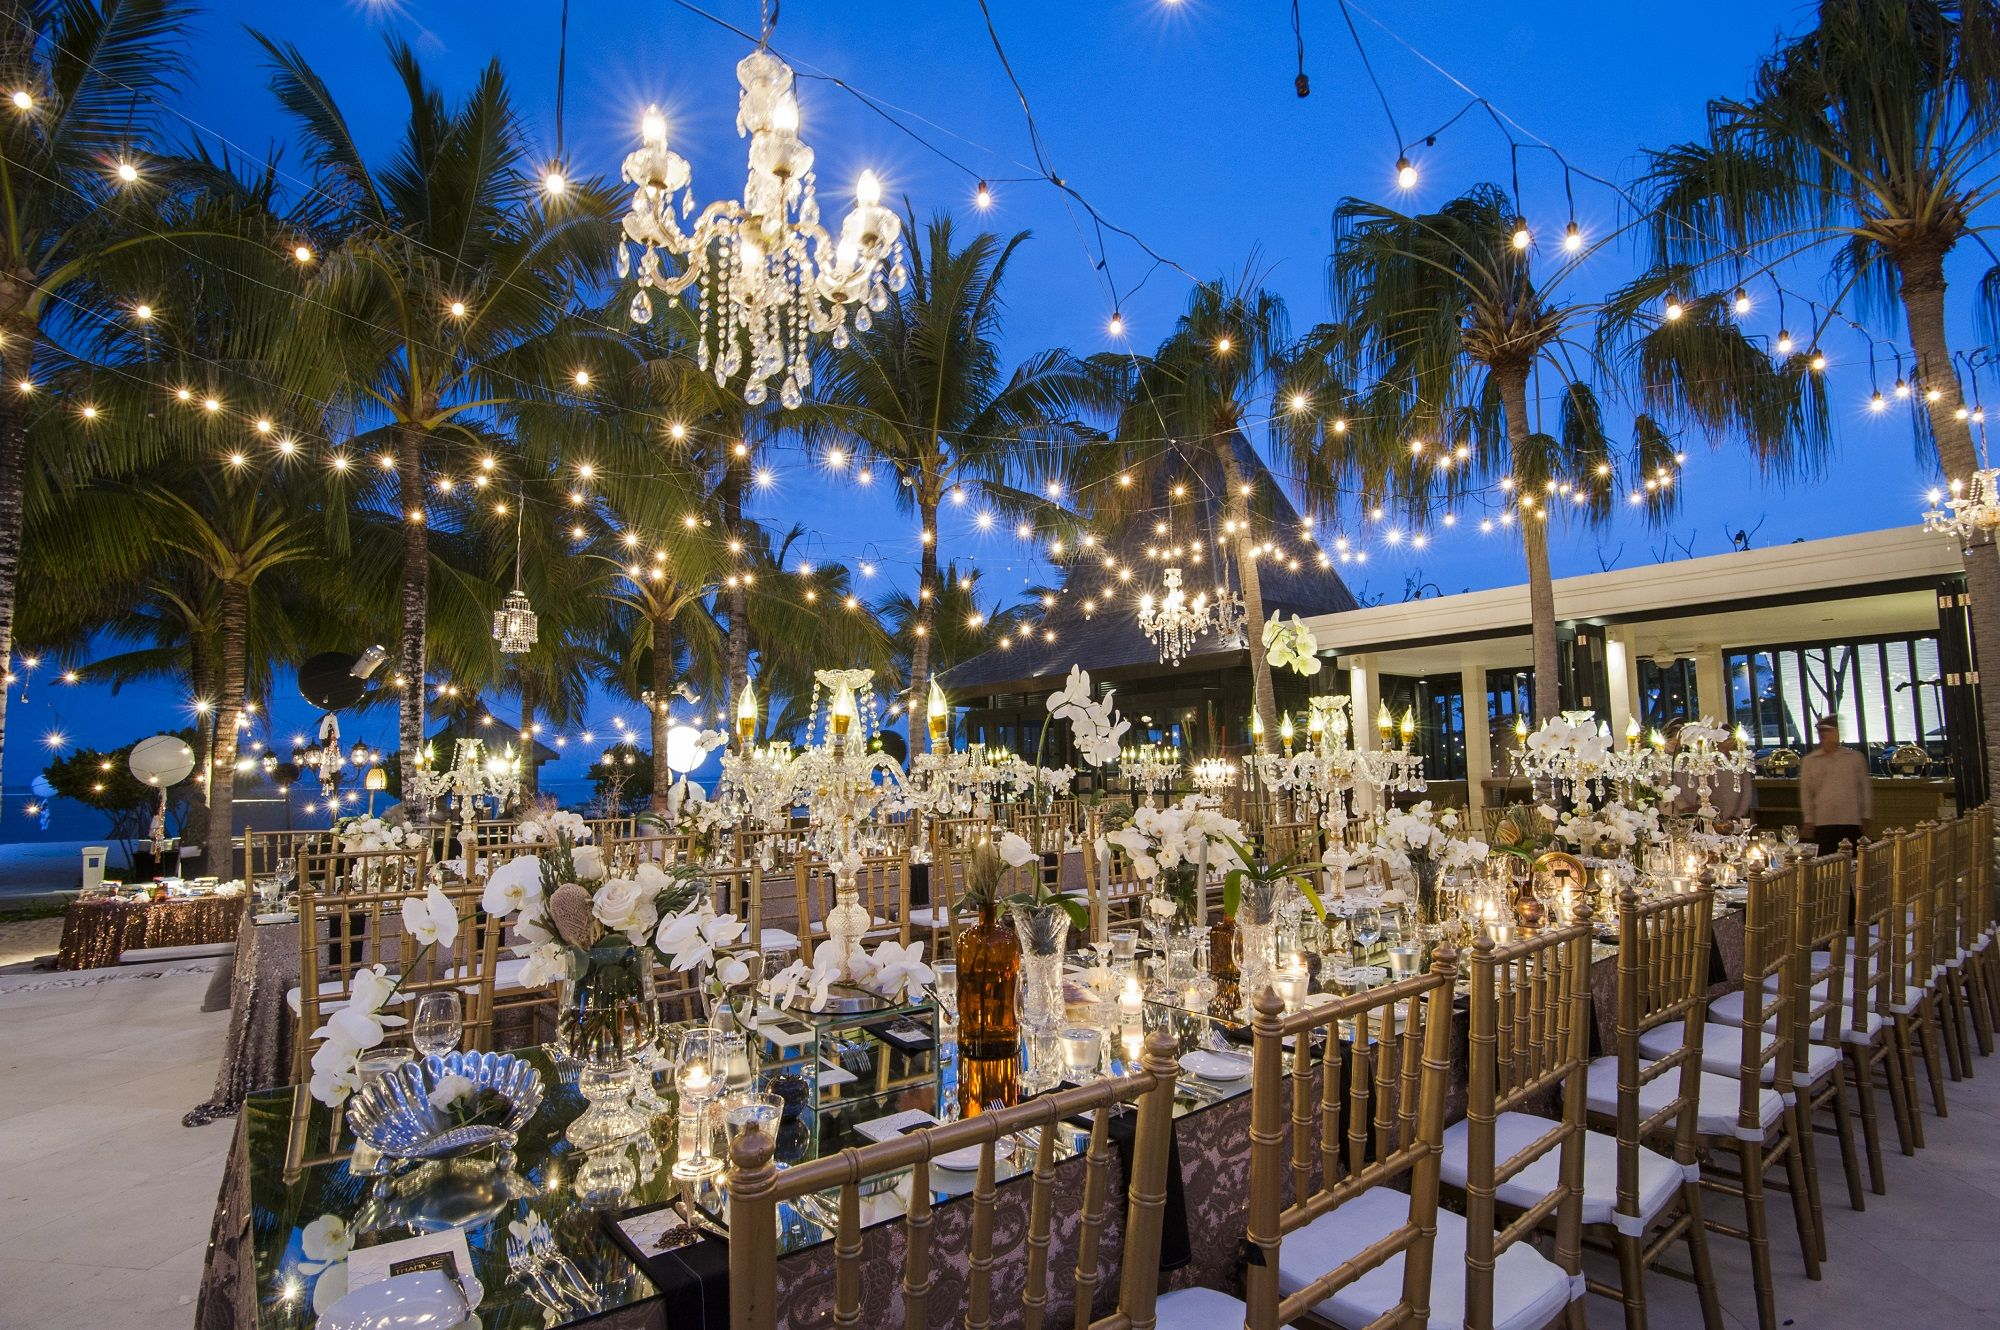 Awesome Wedding Reception in Paradise Book your dream wedding with us at www.theroyalsantrianwedding.com The Royal Santrian Luxury Beach Villa , Tanjung Benoa Bali